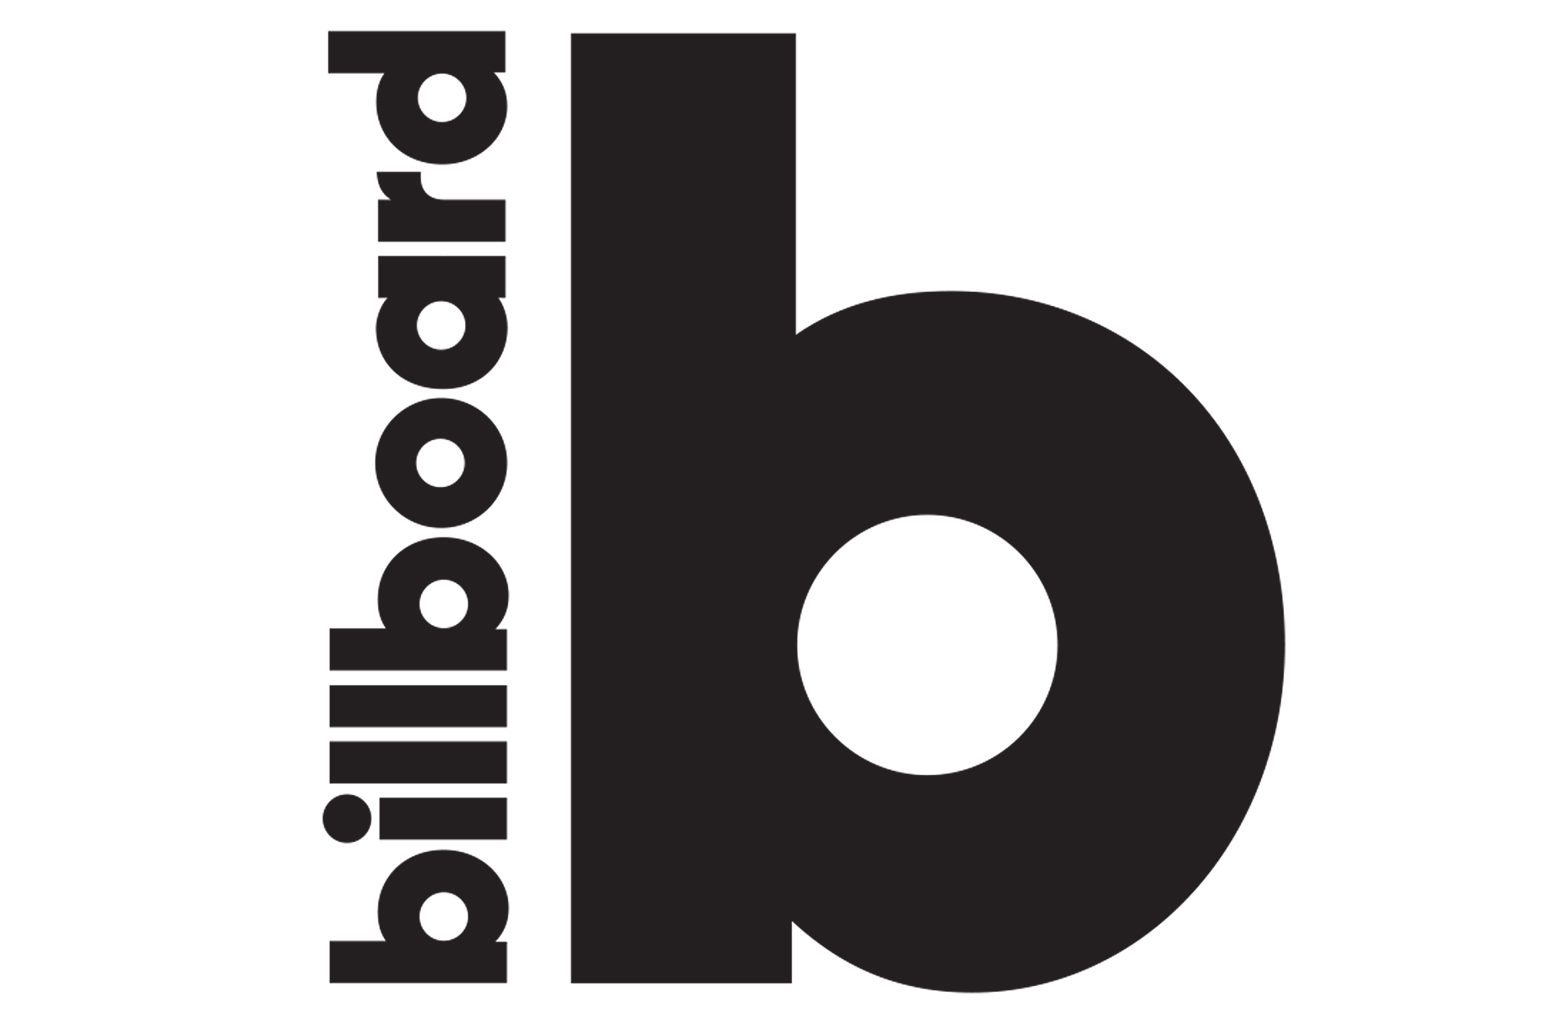 billboard-logo-2016-1548.jpg